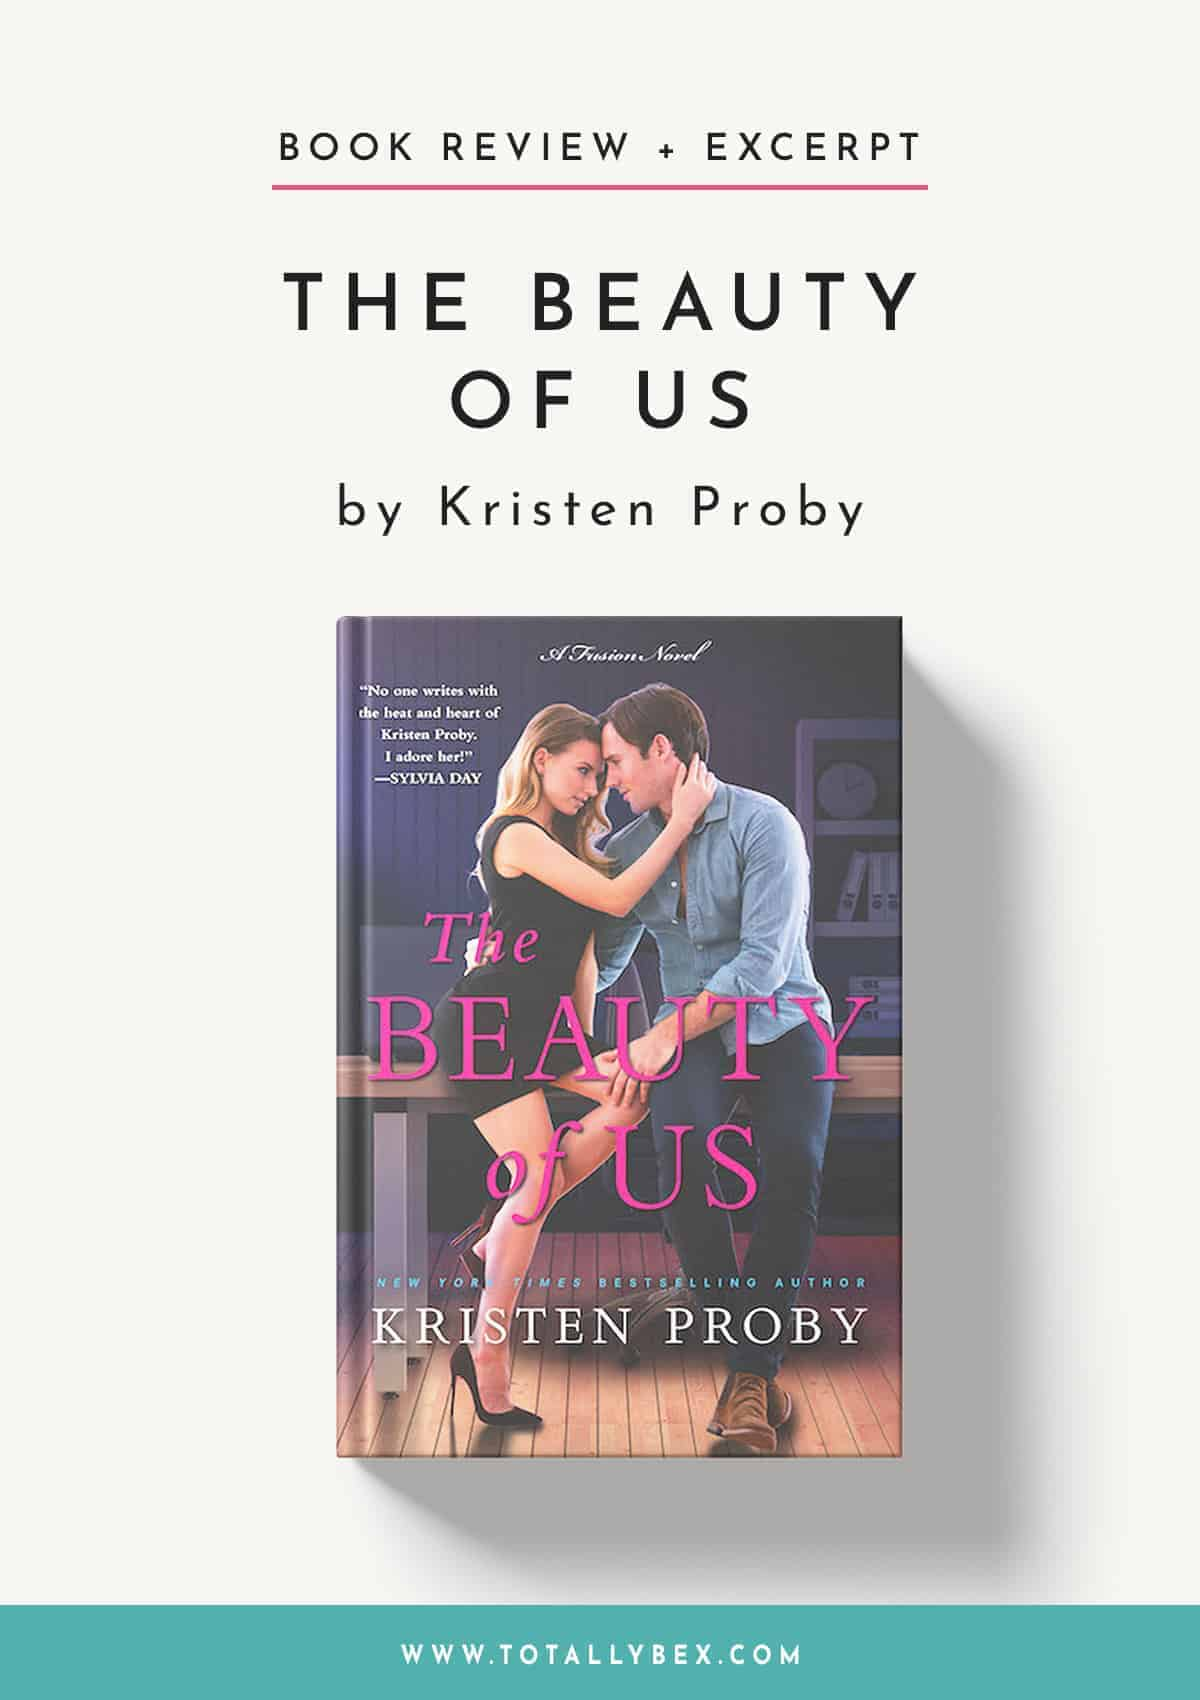 The Beauty of Us by Kristen Proby-Book Review+Excerpt